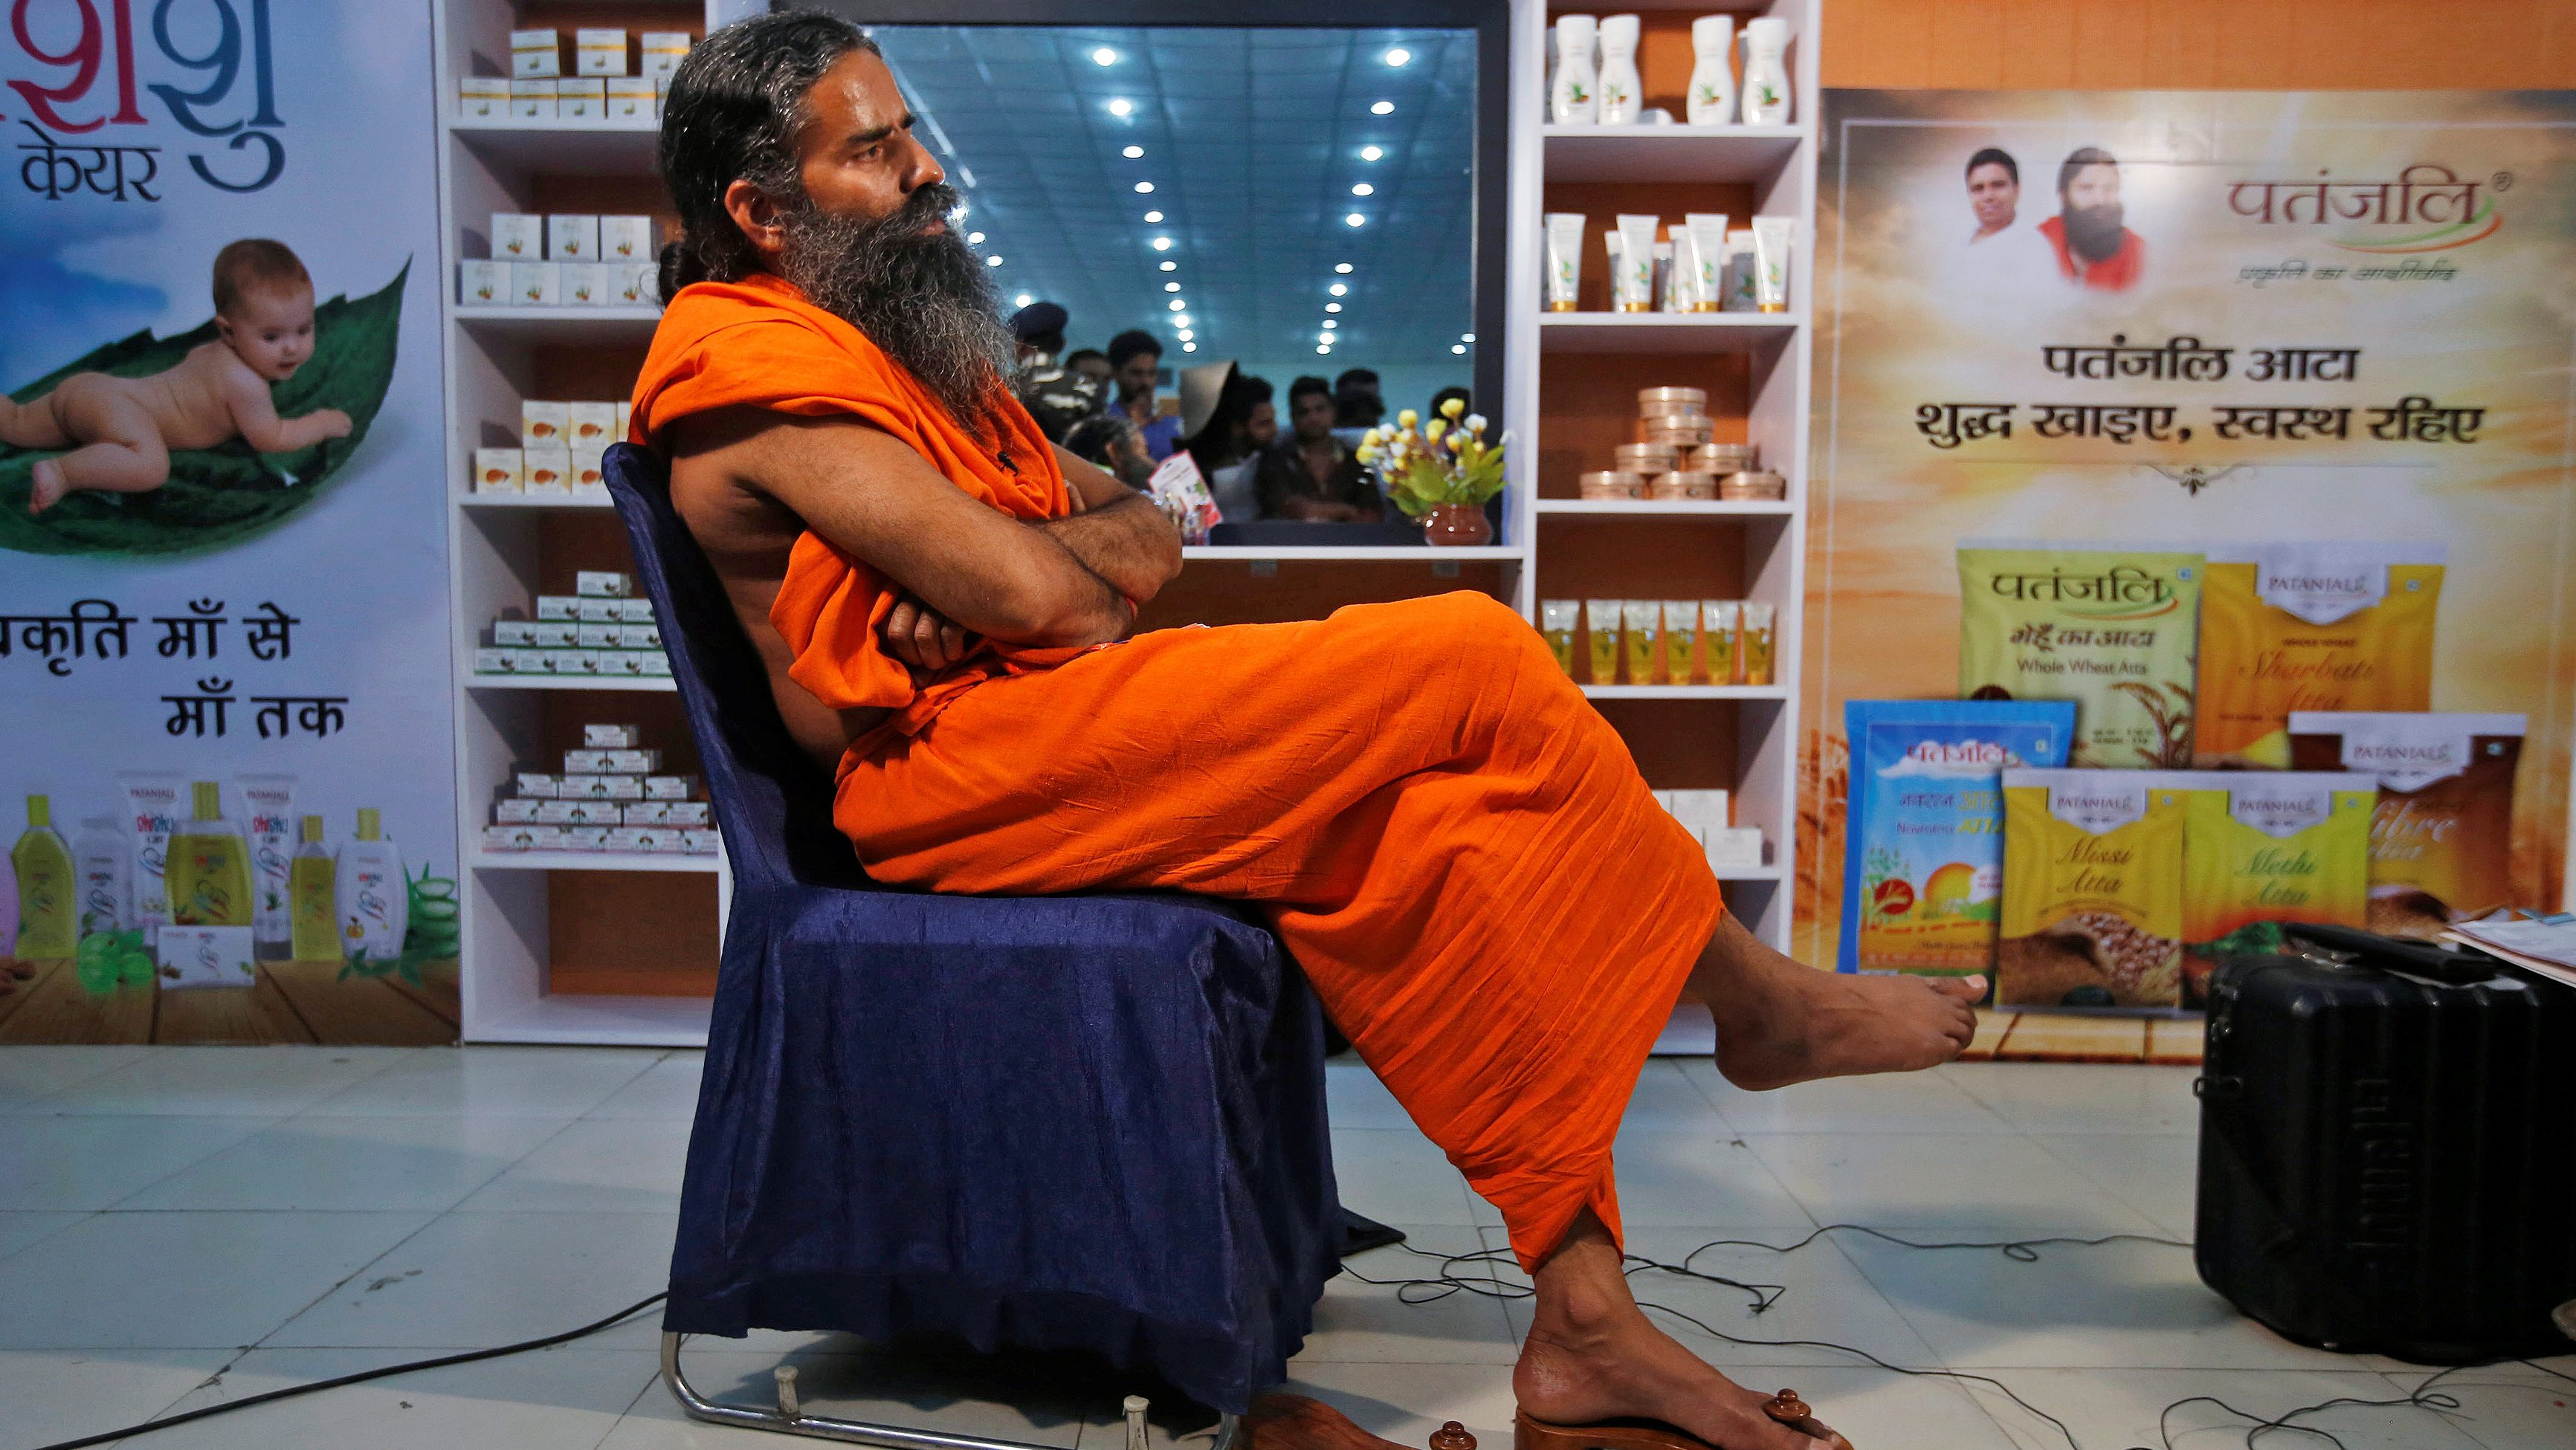 Indian yoga guru Baba Ramdev talks to media after a news conference in New Delhi, India, May 4, 2017. Picture taken on May 4, 2017.